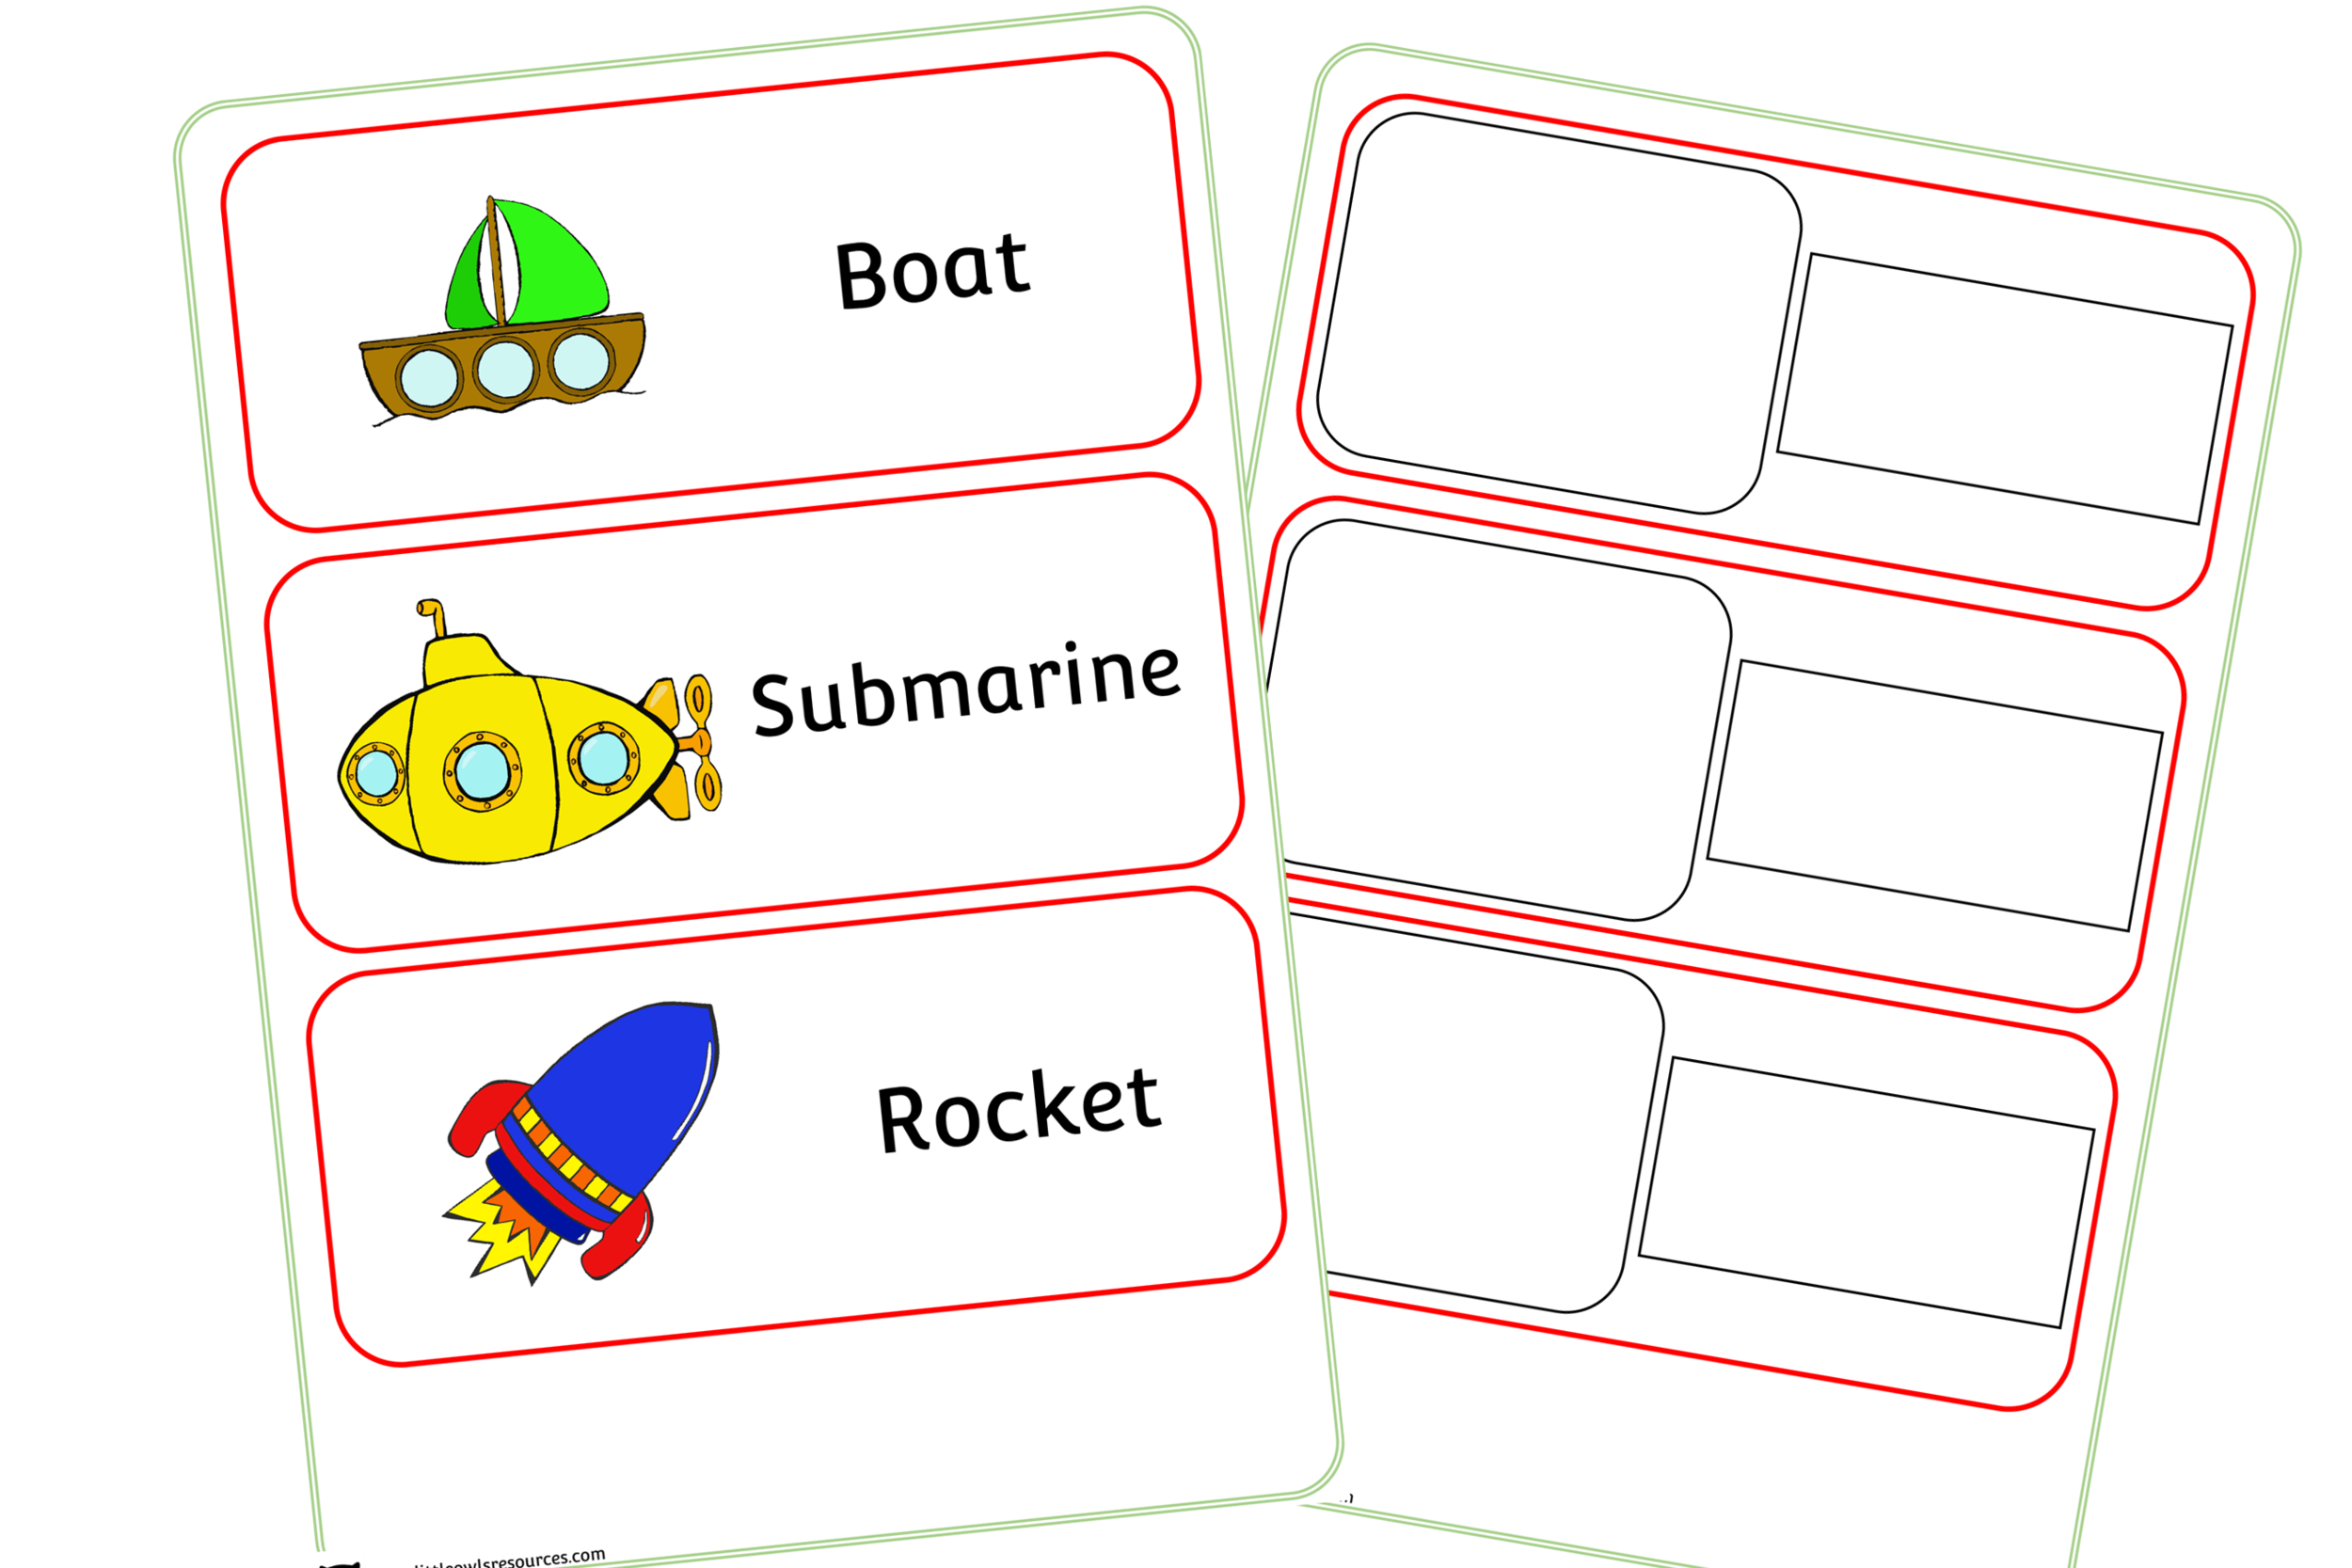 Vehicle/Transport/Travel Word Cards